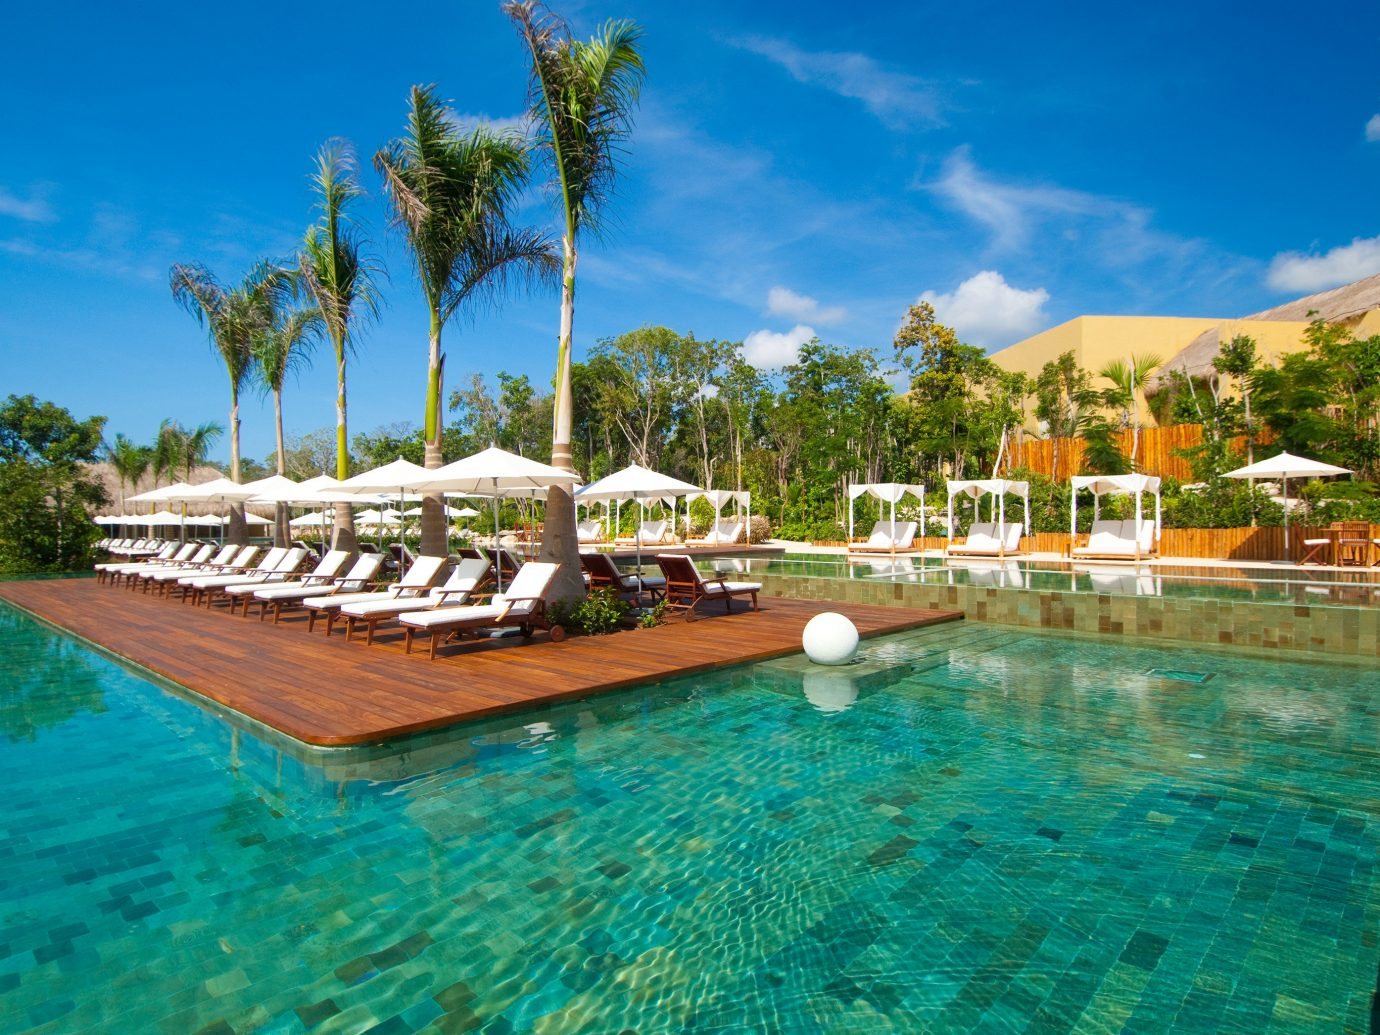 All-Inclusive Resorts Beach Beachfront Elegant Family Travel Hotels Living Lounge Luxury Modern Pool Romance tree sky water outdoor swimming pool property leisure Resort estate vacation resort town Lagoon Villa swimming bay caribbean blue surrounded Garden